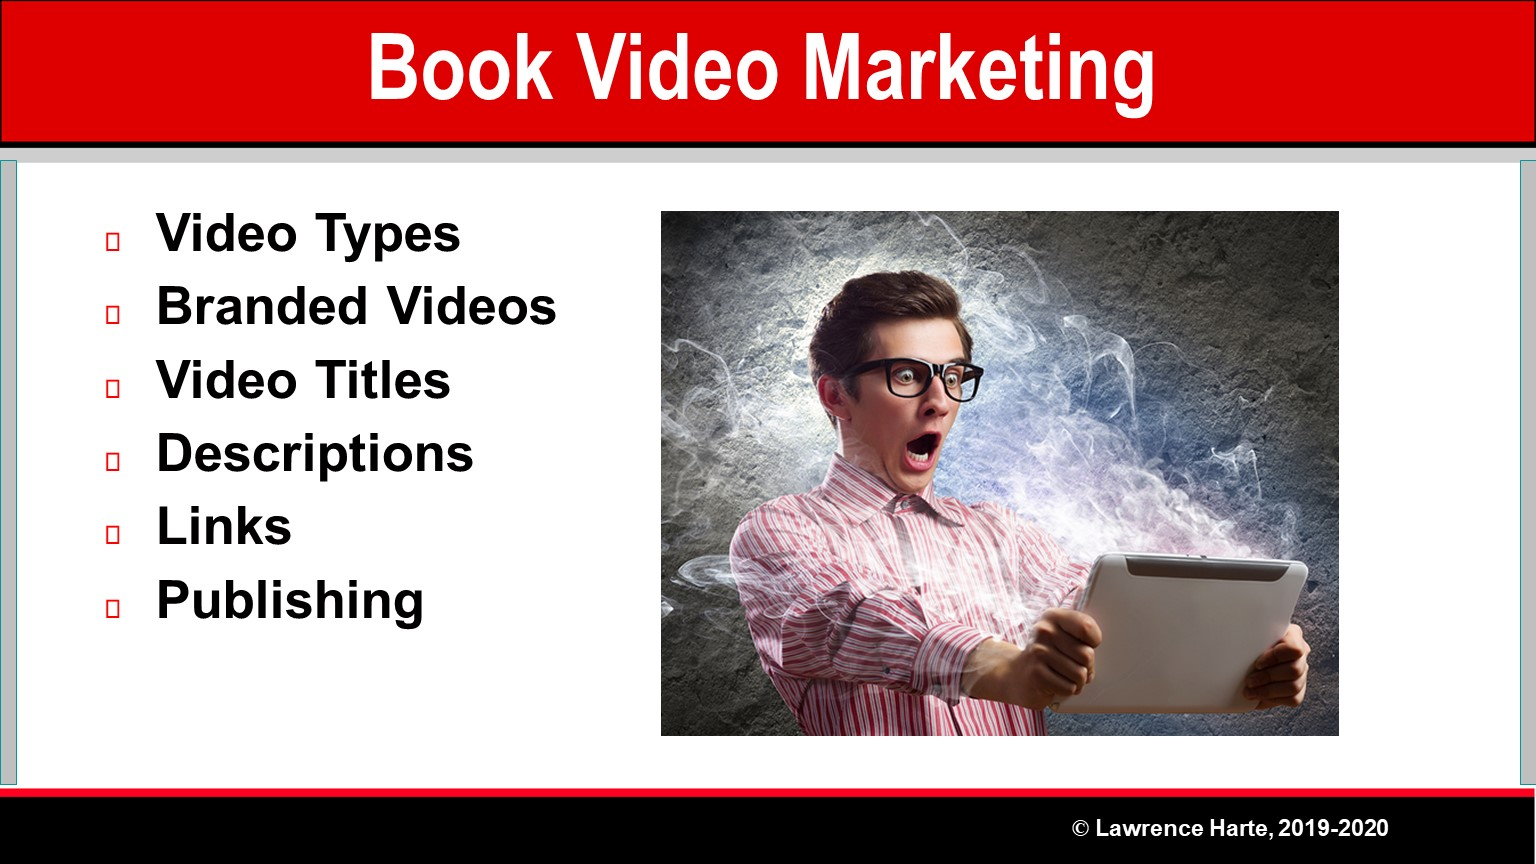 Book Pre-Launch Marketing Video Promotion